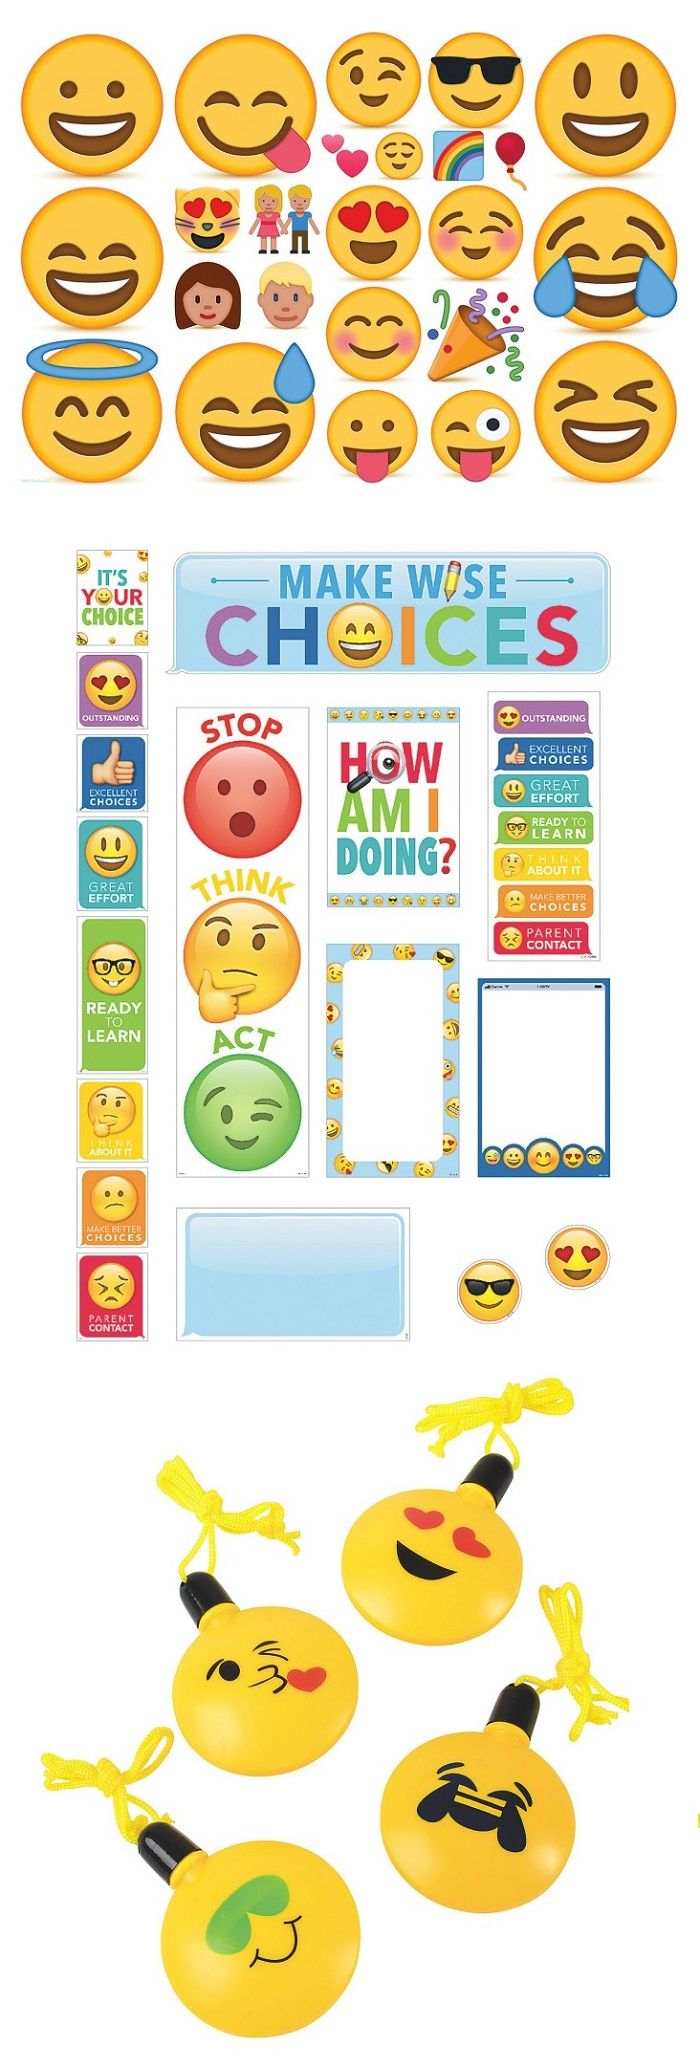 Emojis can be used in the classroom and afterschool! Use them for bulletin boards, charts, posters, crafts, prizes, and more. Students can use emojis to learn how to express themselves and learn what expression represent each emotion. No matter what your teaching style, you can add an emoji theme to your lesson plan or activity!